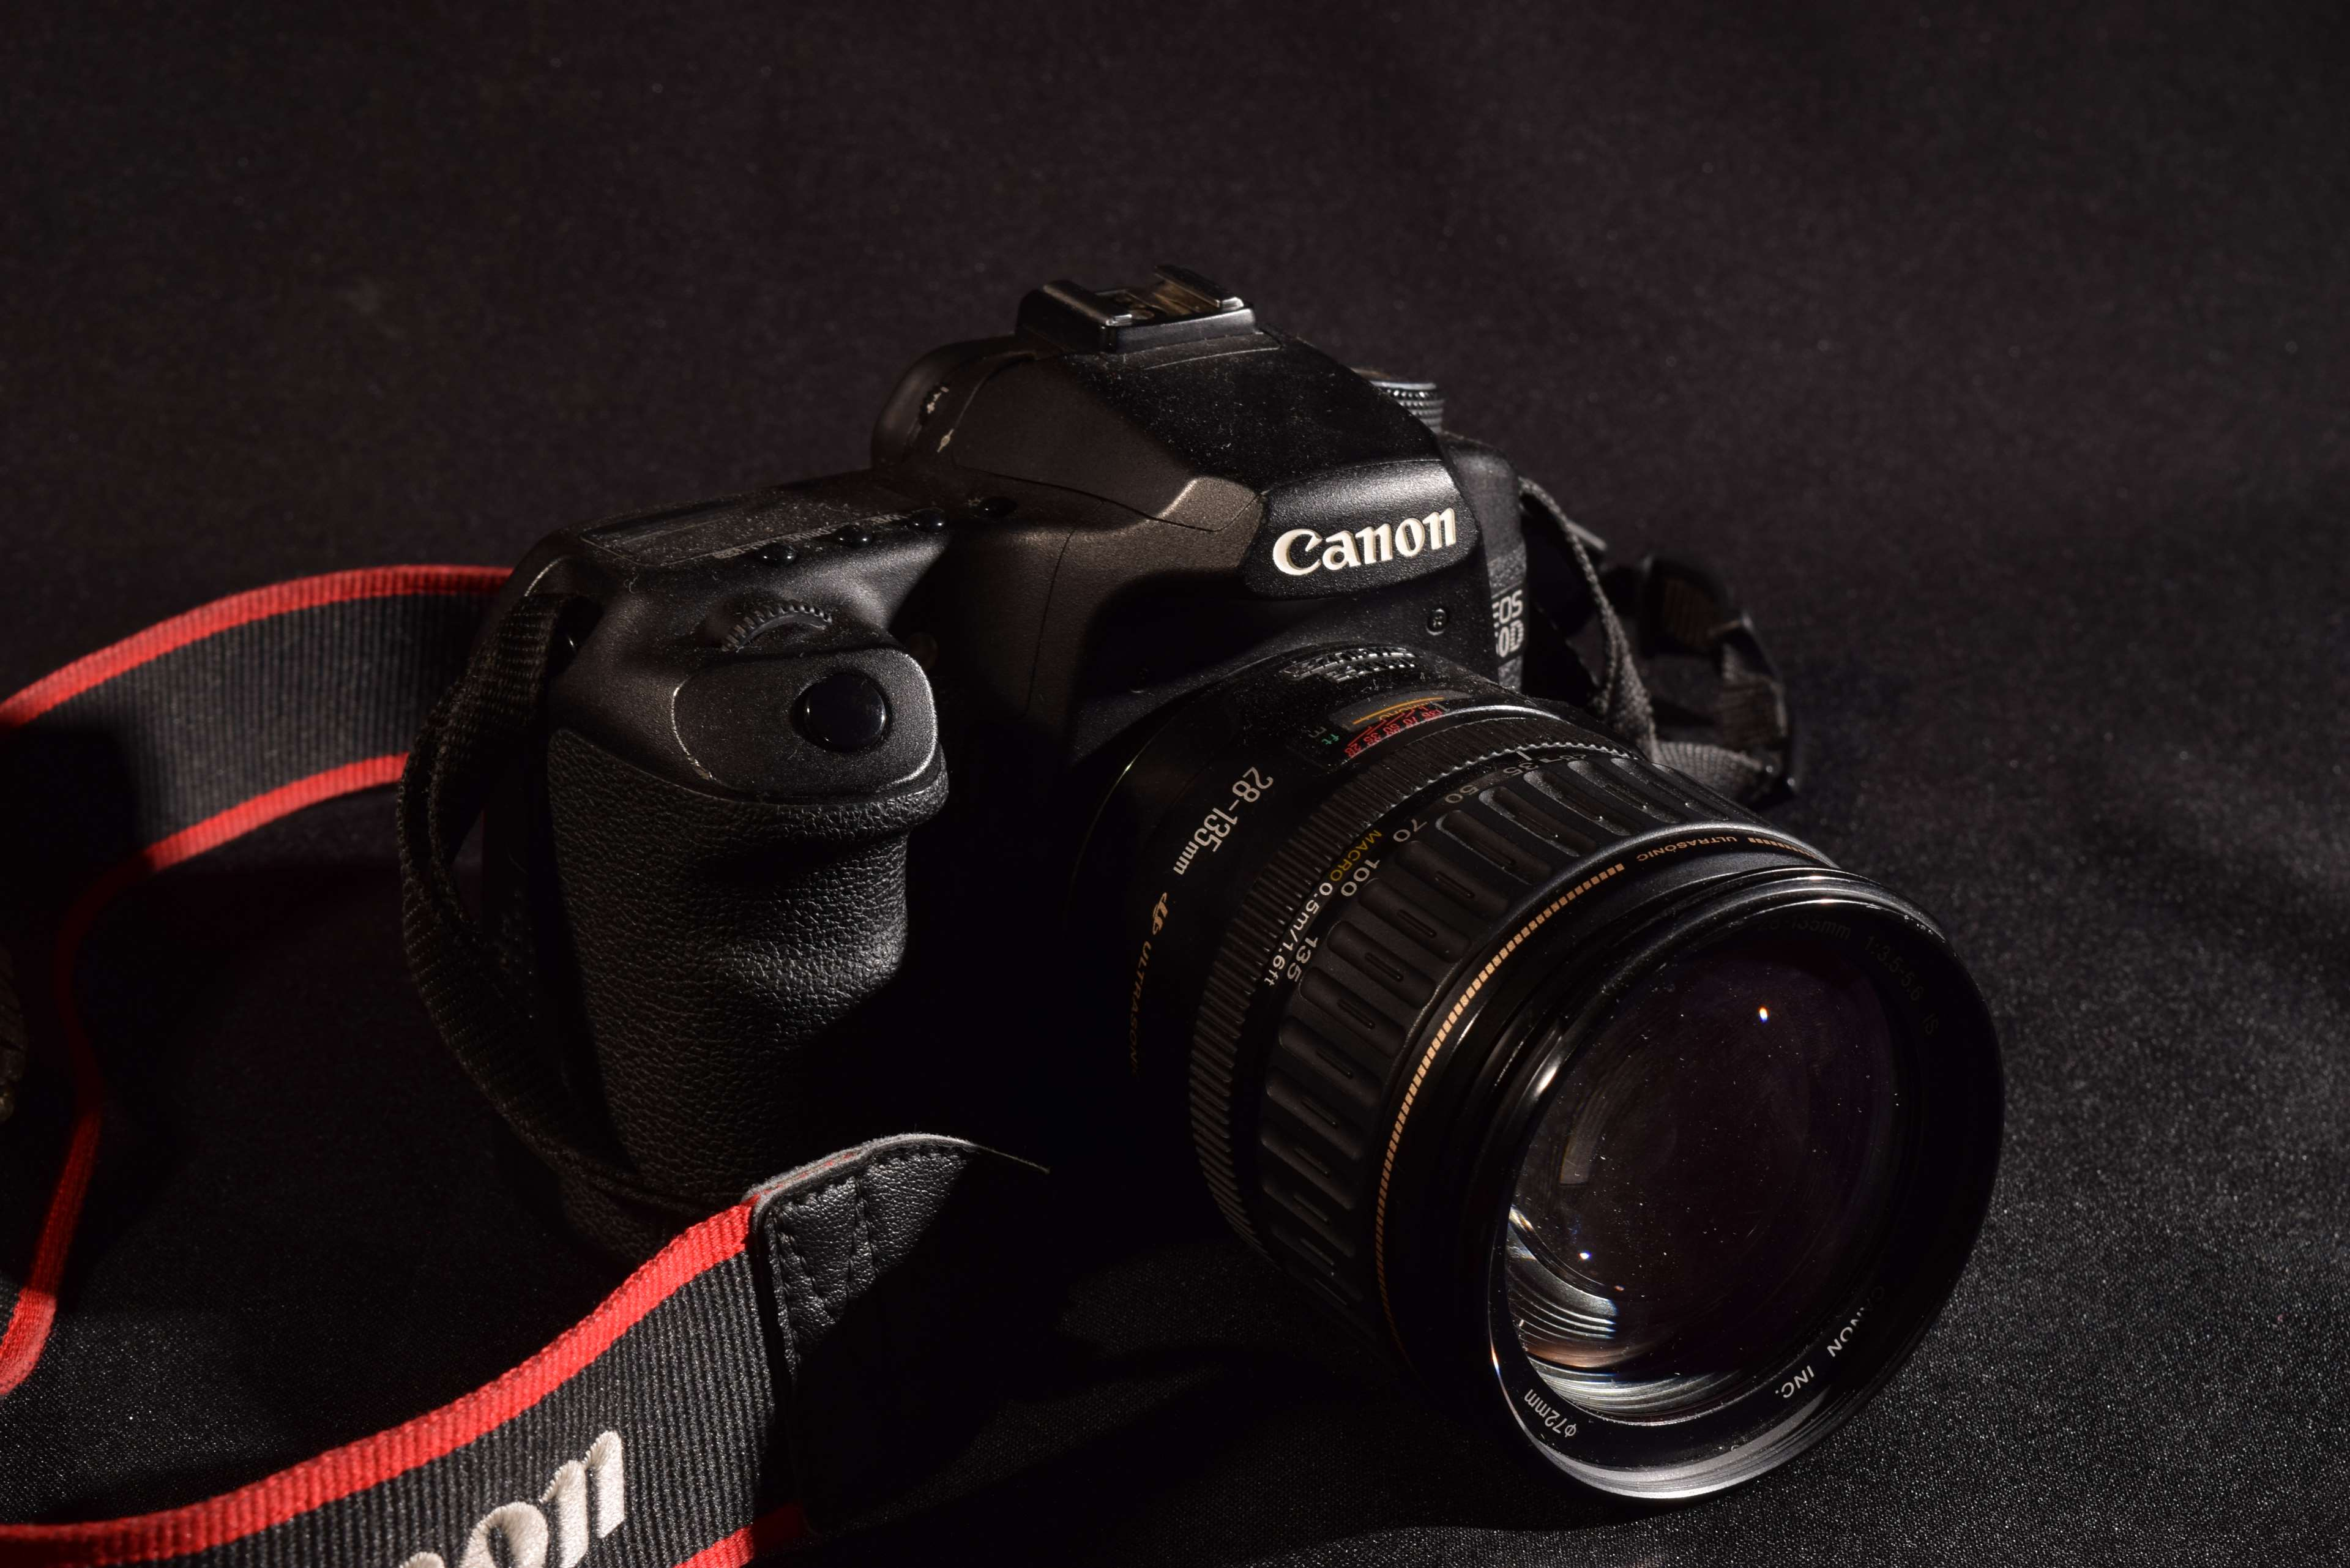 Canon 4K Wallpapers - Top Free Canon 4K Backgrounds ...